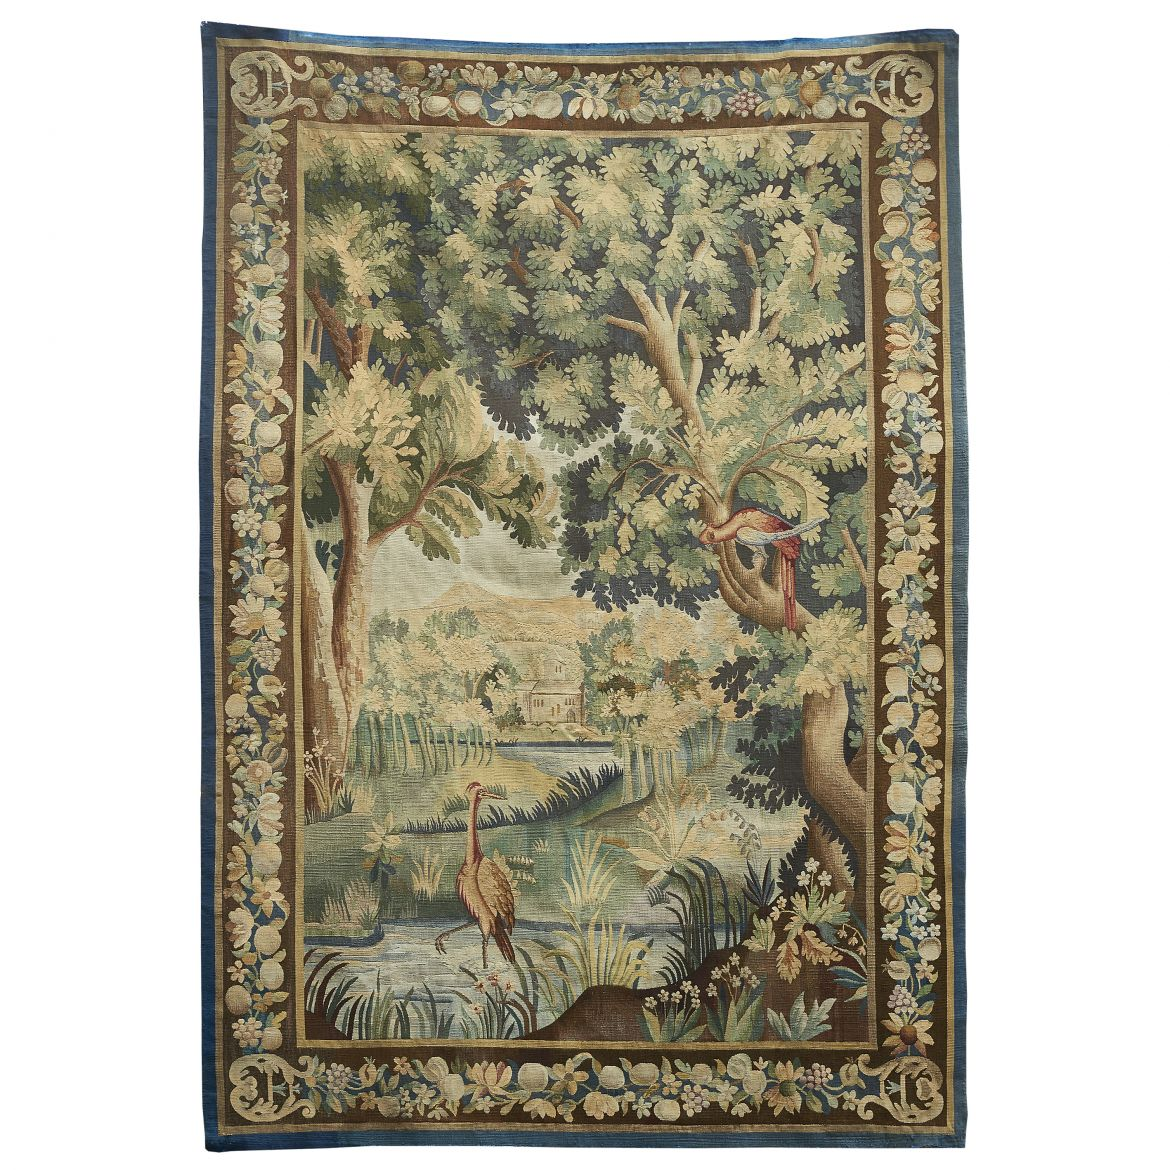 French Aubusson Tapestry Depicting A Crane In A Pond